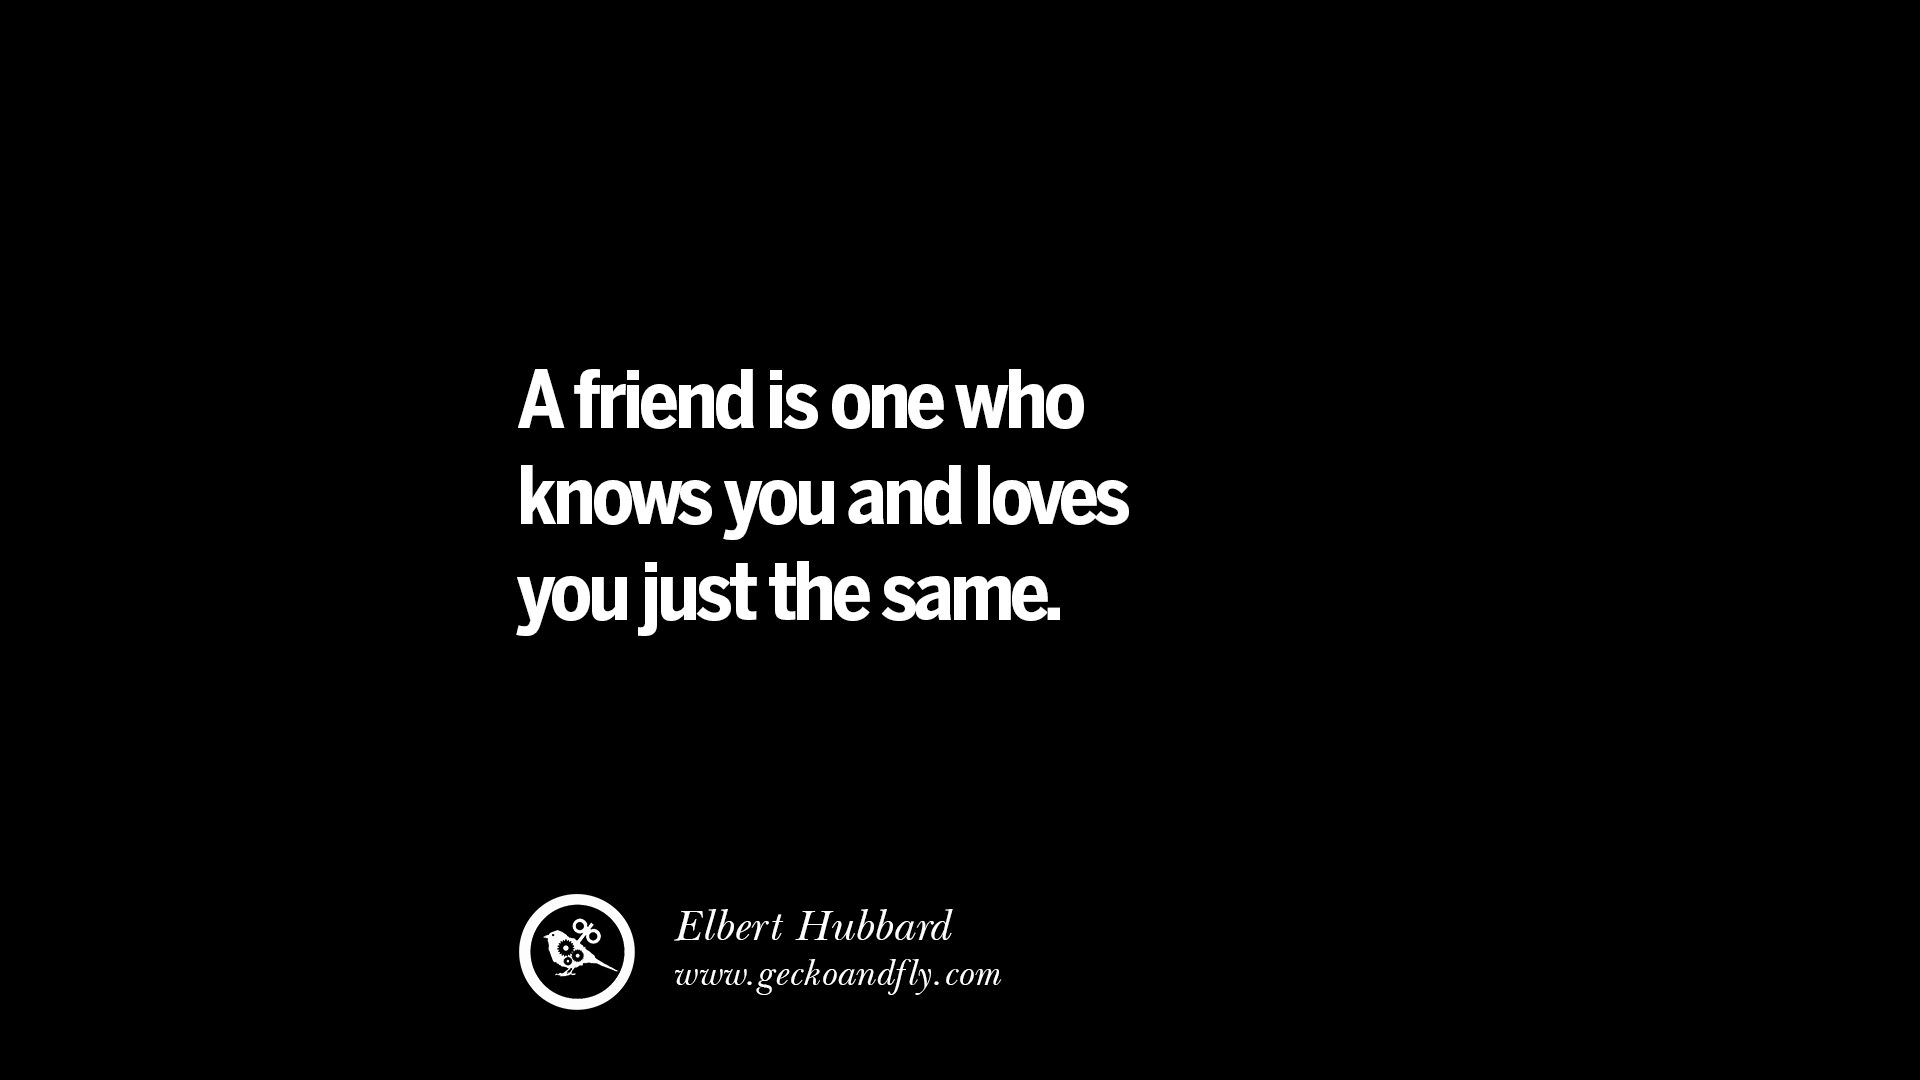 Love Friendship Quotes Quotes Love Friendship Images Friendship Quotes Top Best Friend